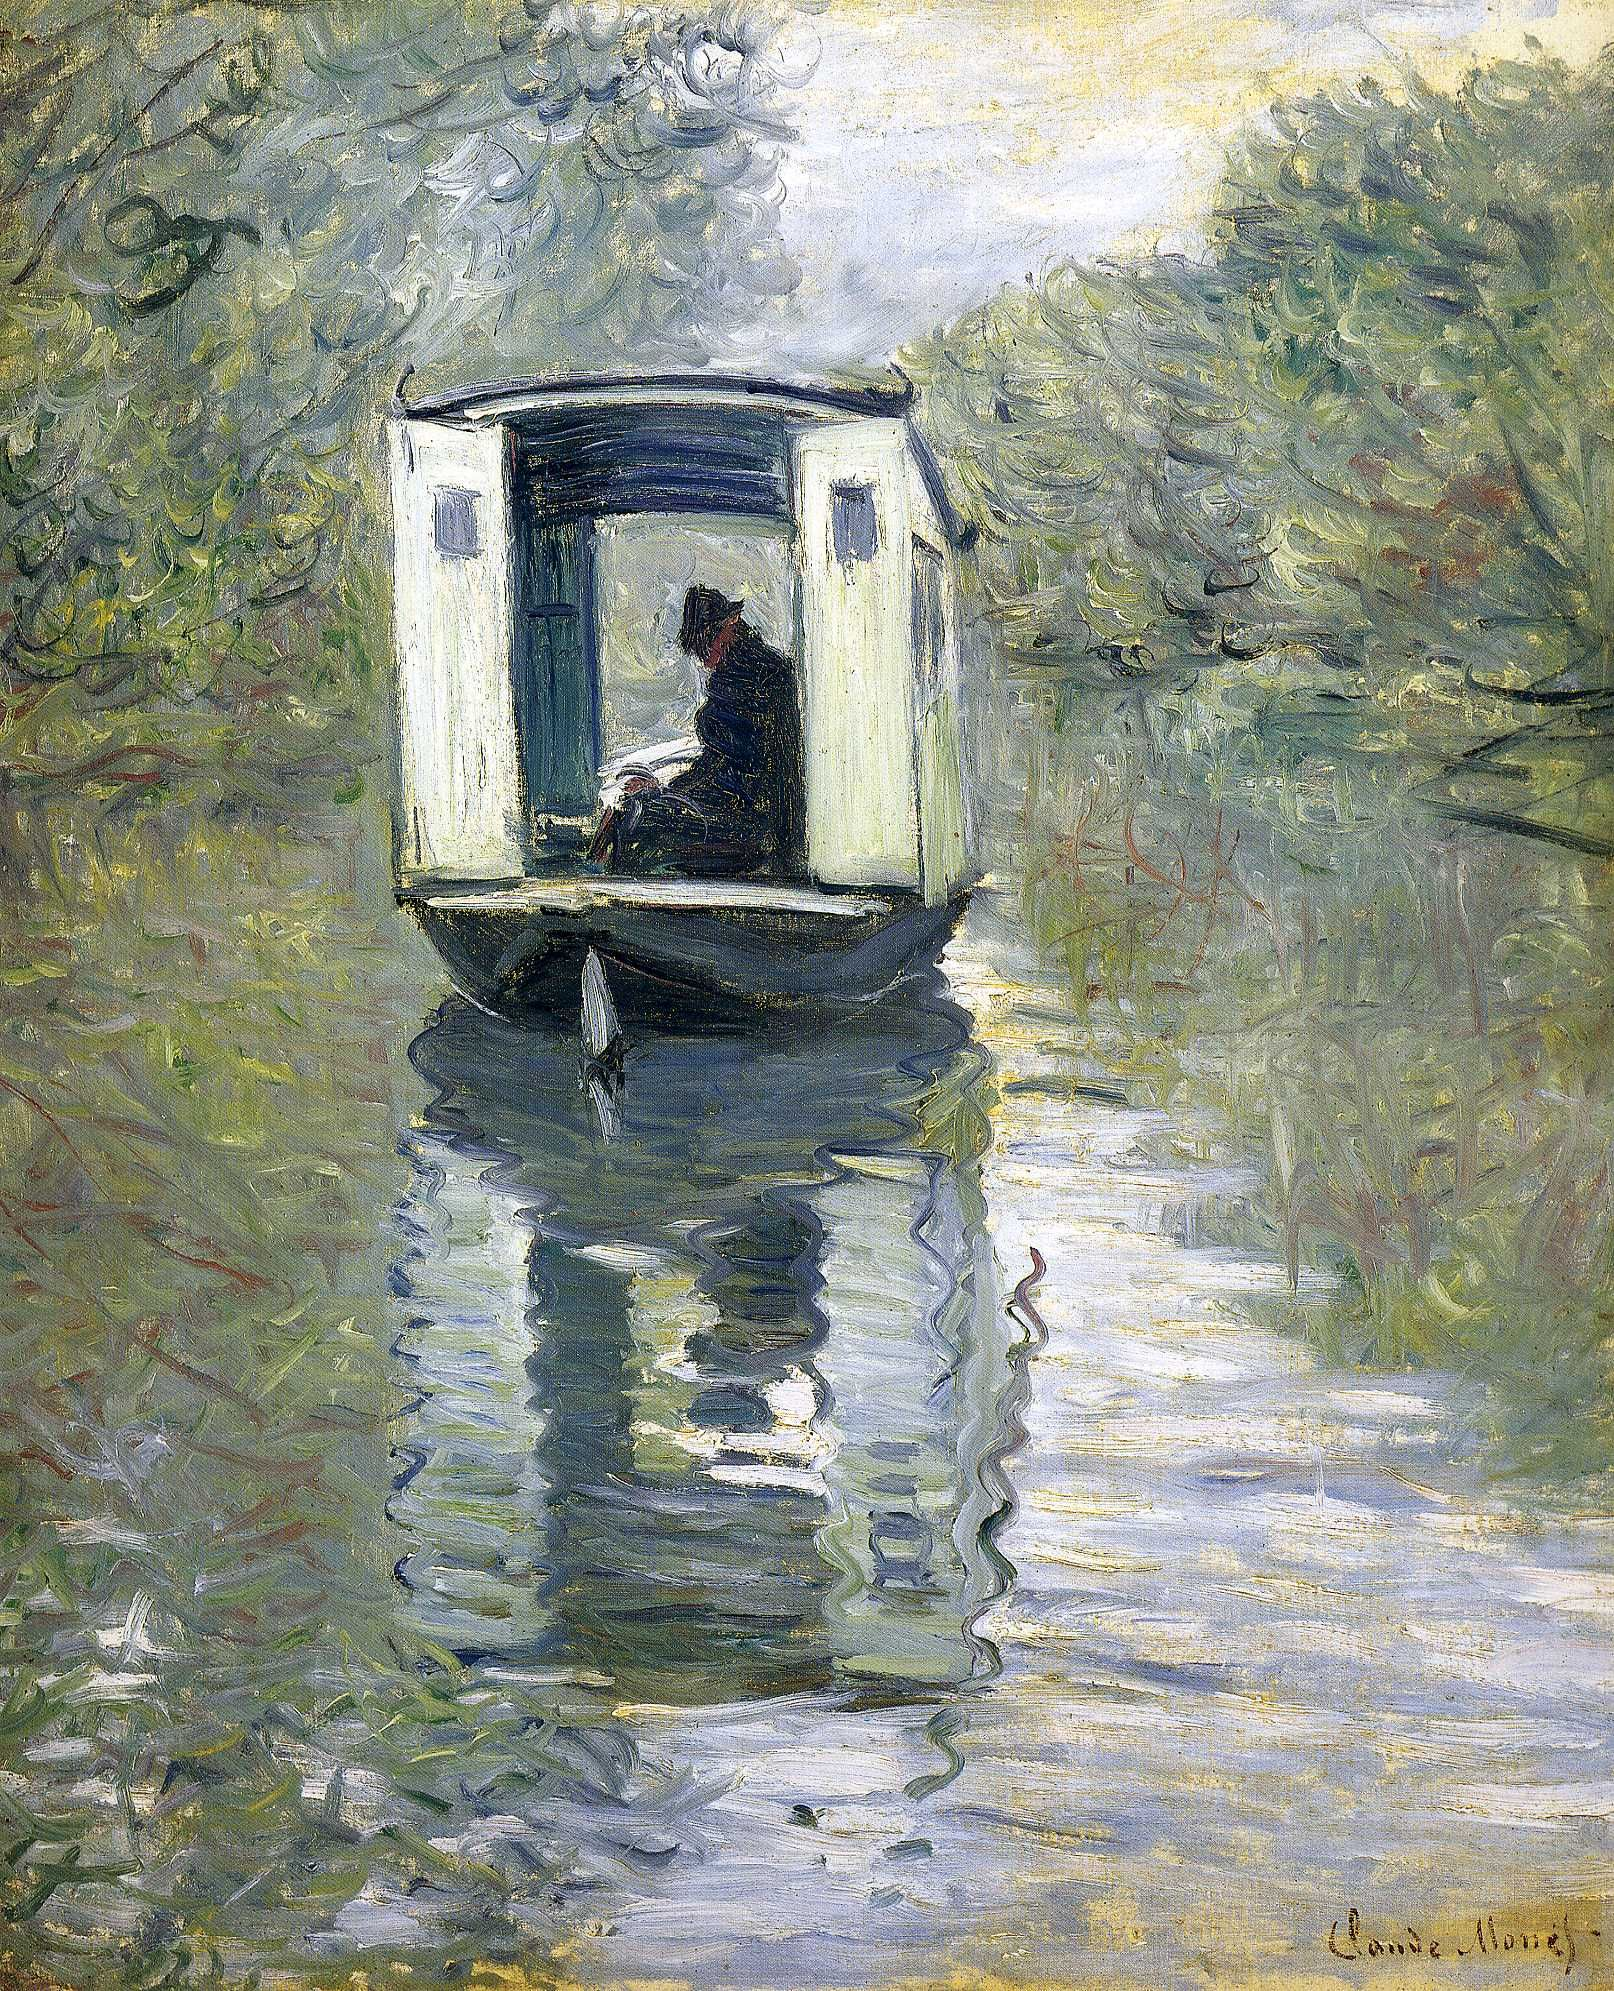 The Boat Studio by @claude_monet #impressionism